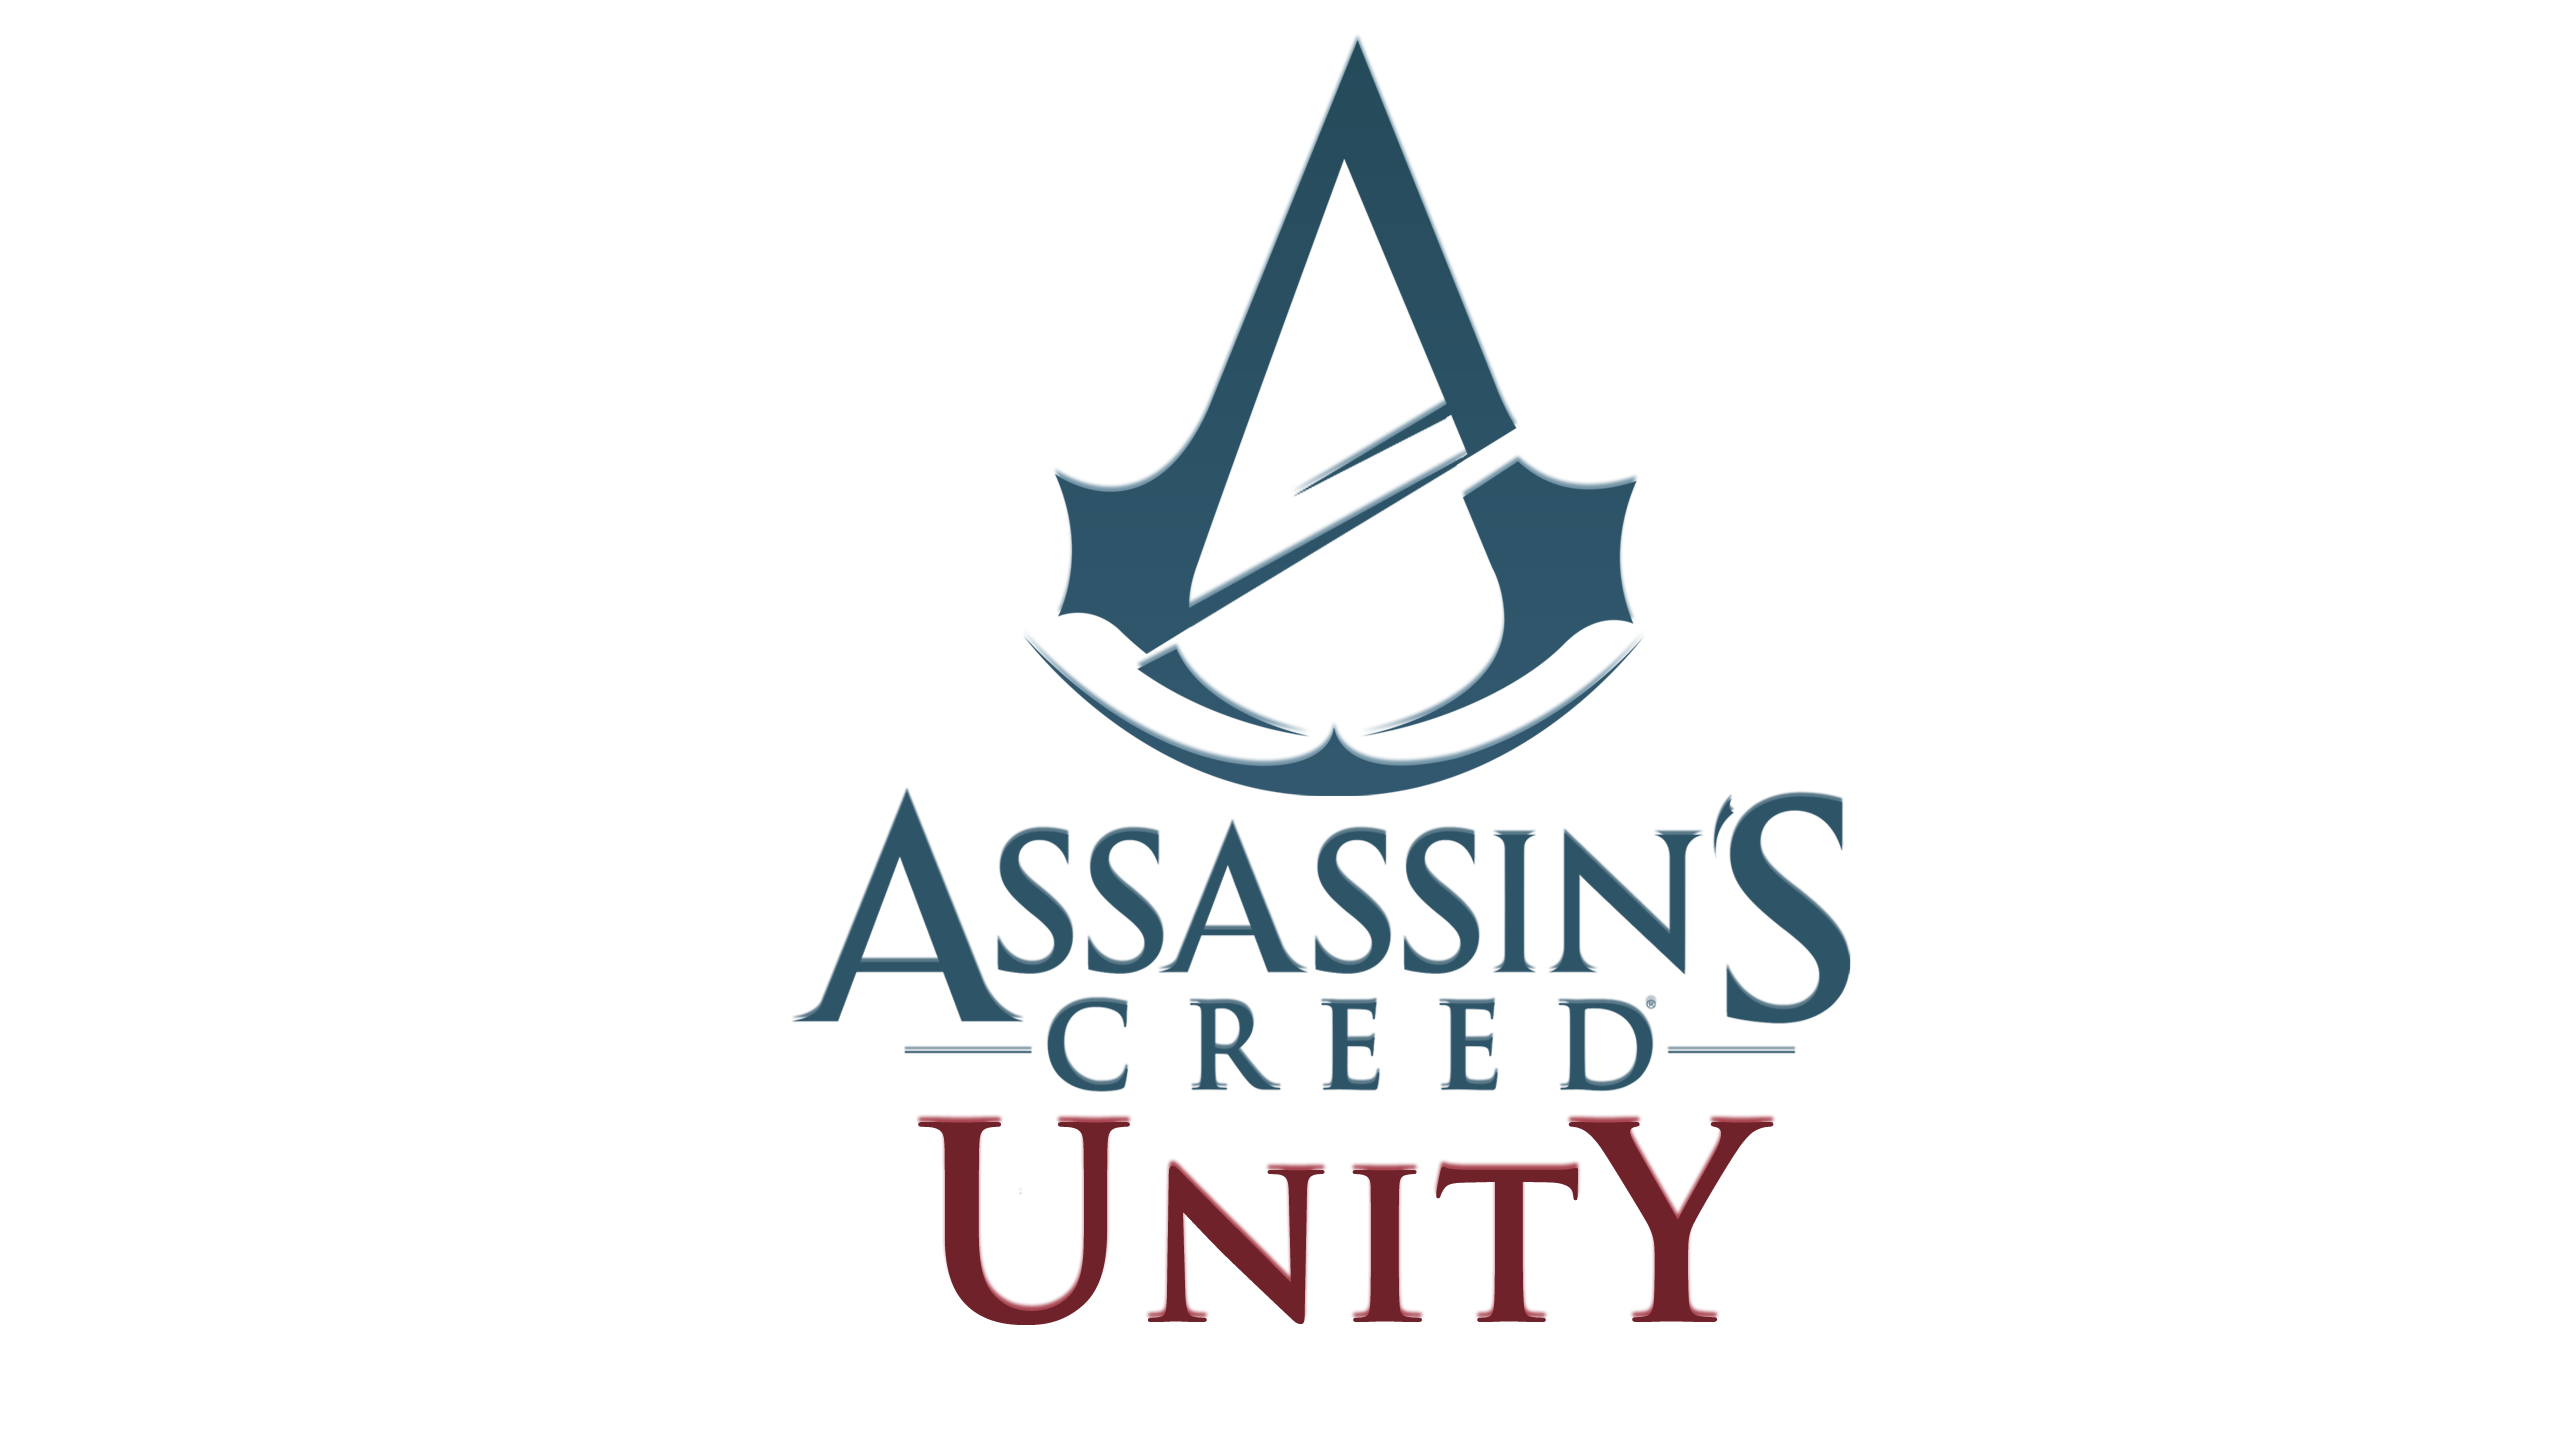 Assassins Creed Unity PNG-PlusPNG.com-2560 - Assassins Creed Unity PNG